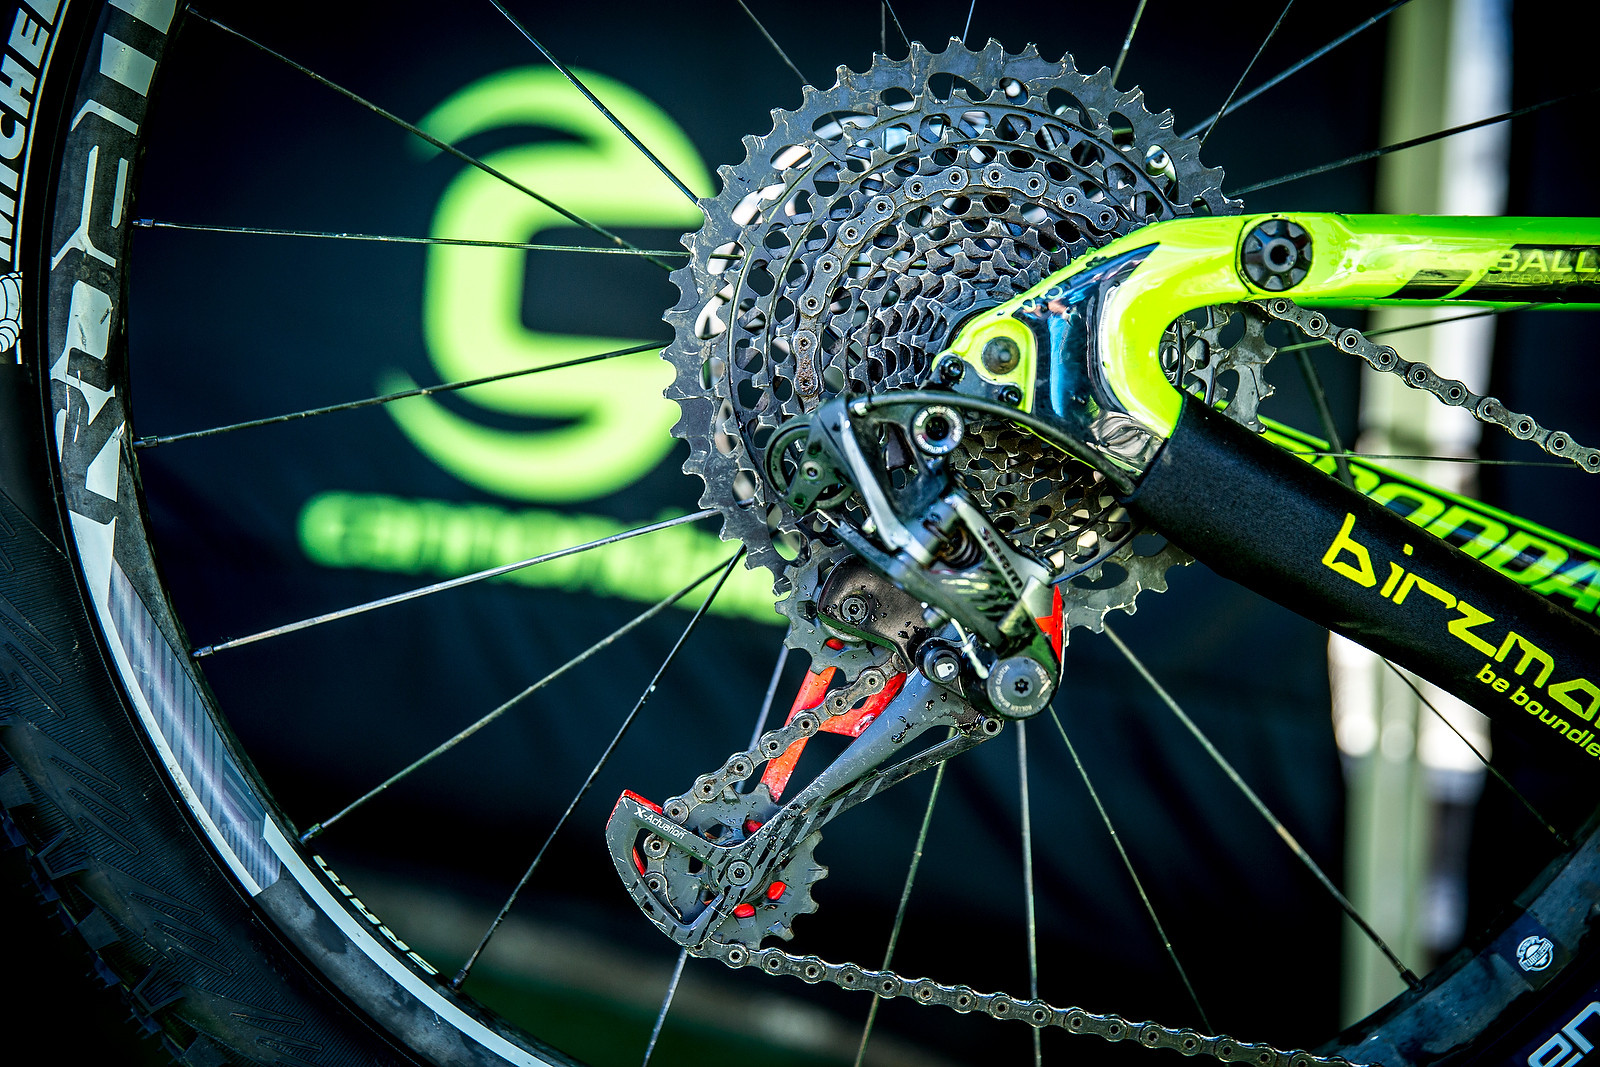 Jerome Clementz's Eagle 50t Cassette - PIT BITS - Enduro World Series, Corral, Chile - Mountain Biking Pictures - Vital MTB